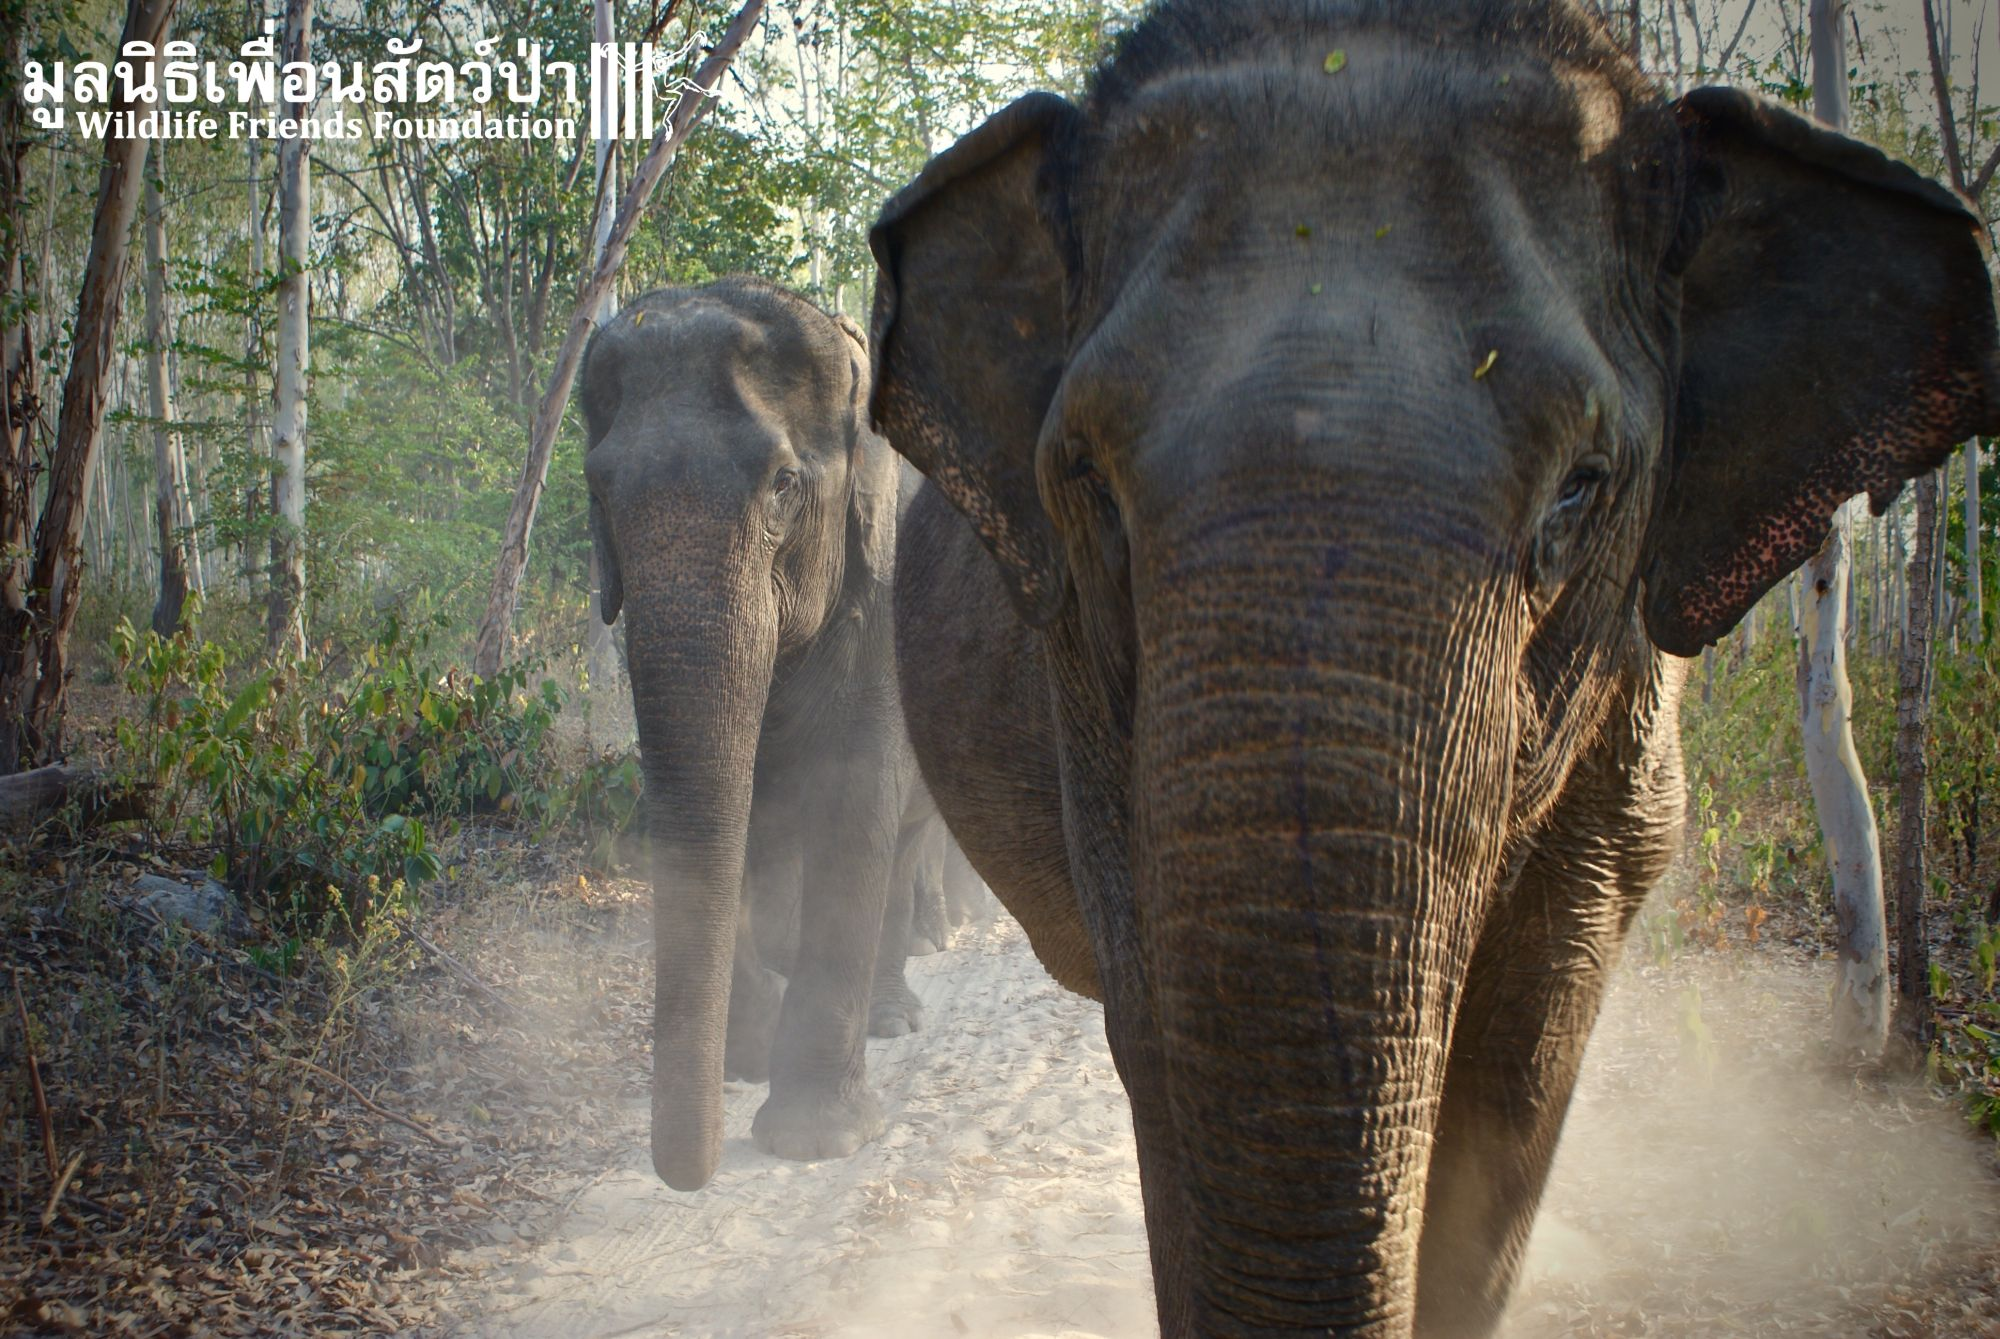 Thailand Phetchaburi Wildlife Friends Foundation Thailand olifant